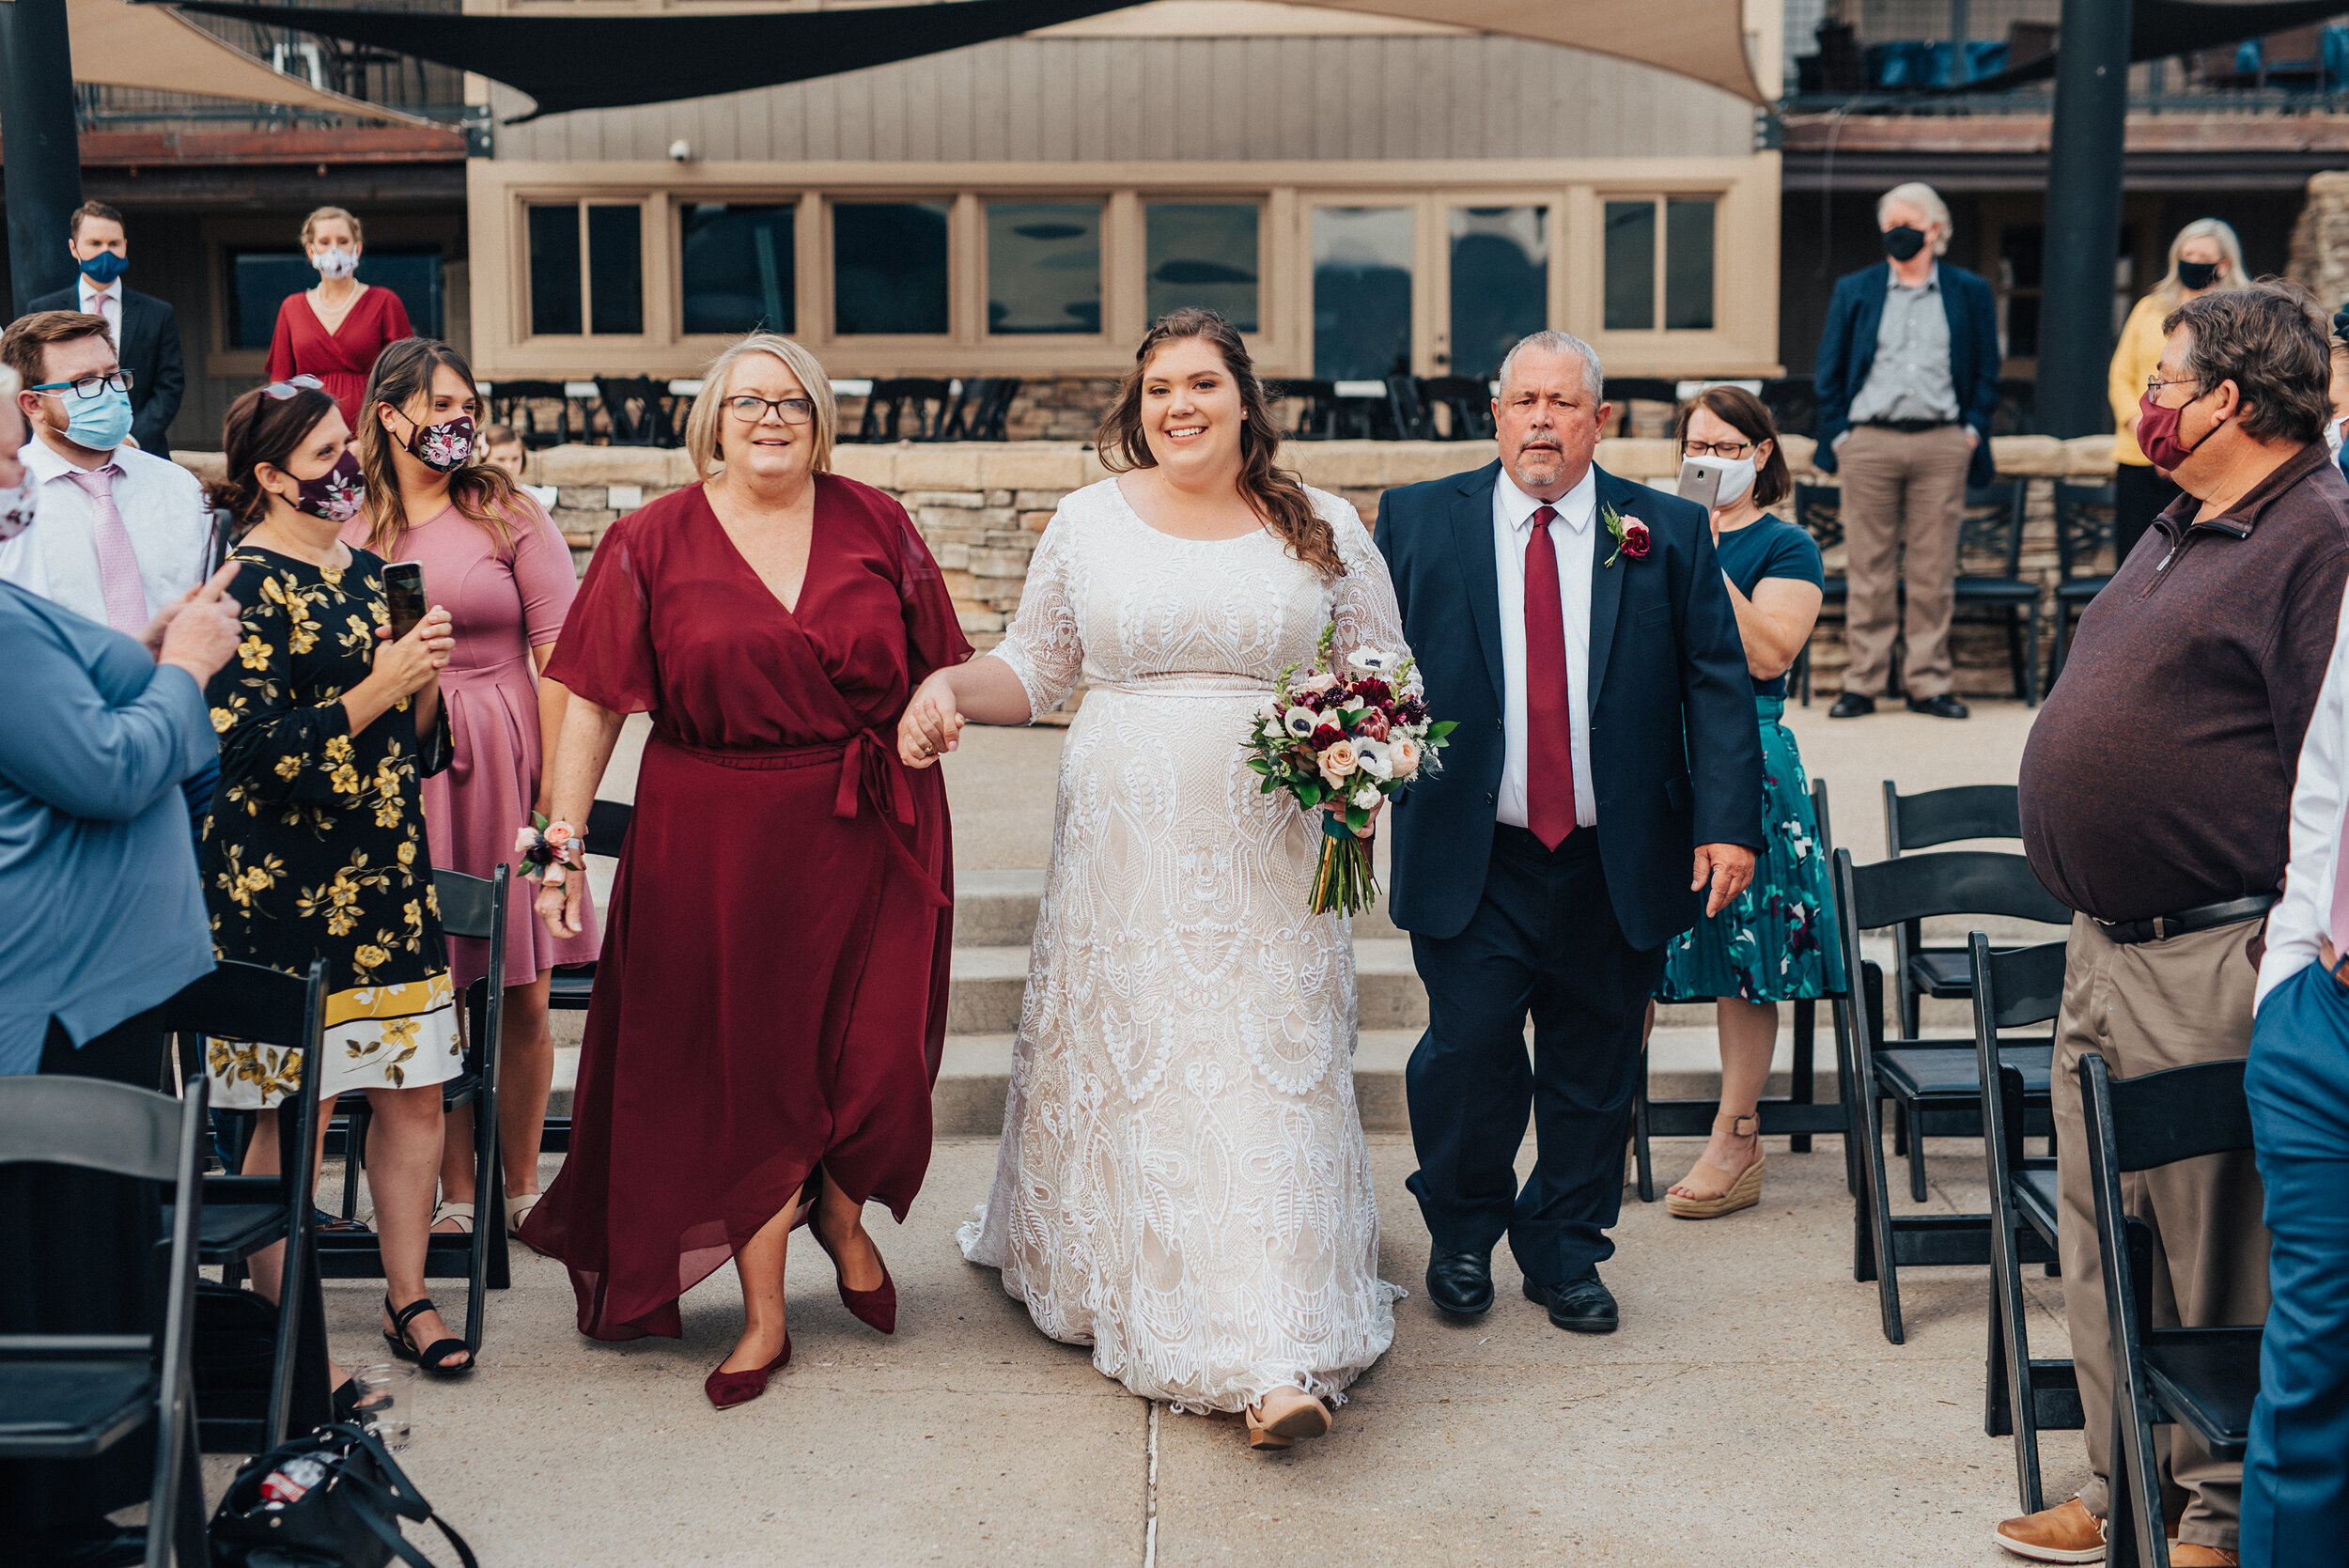 The moment of the bride walking down the aisle captured by Kristi Alyse Photography in northern Utah. Mother and father of the bride walk bride down the aisle meaningful moment quality wedding day photography Kristi Alyse wedding inspiration bride wedding dress lace details #weddinginspo #loganutah #brideandgroom #utahbride #utahweddingphotographer #meaningfulmoment #weddingphotography #northernutahwedding #weddinghairstyles #weddingday #bridals